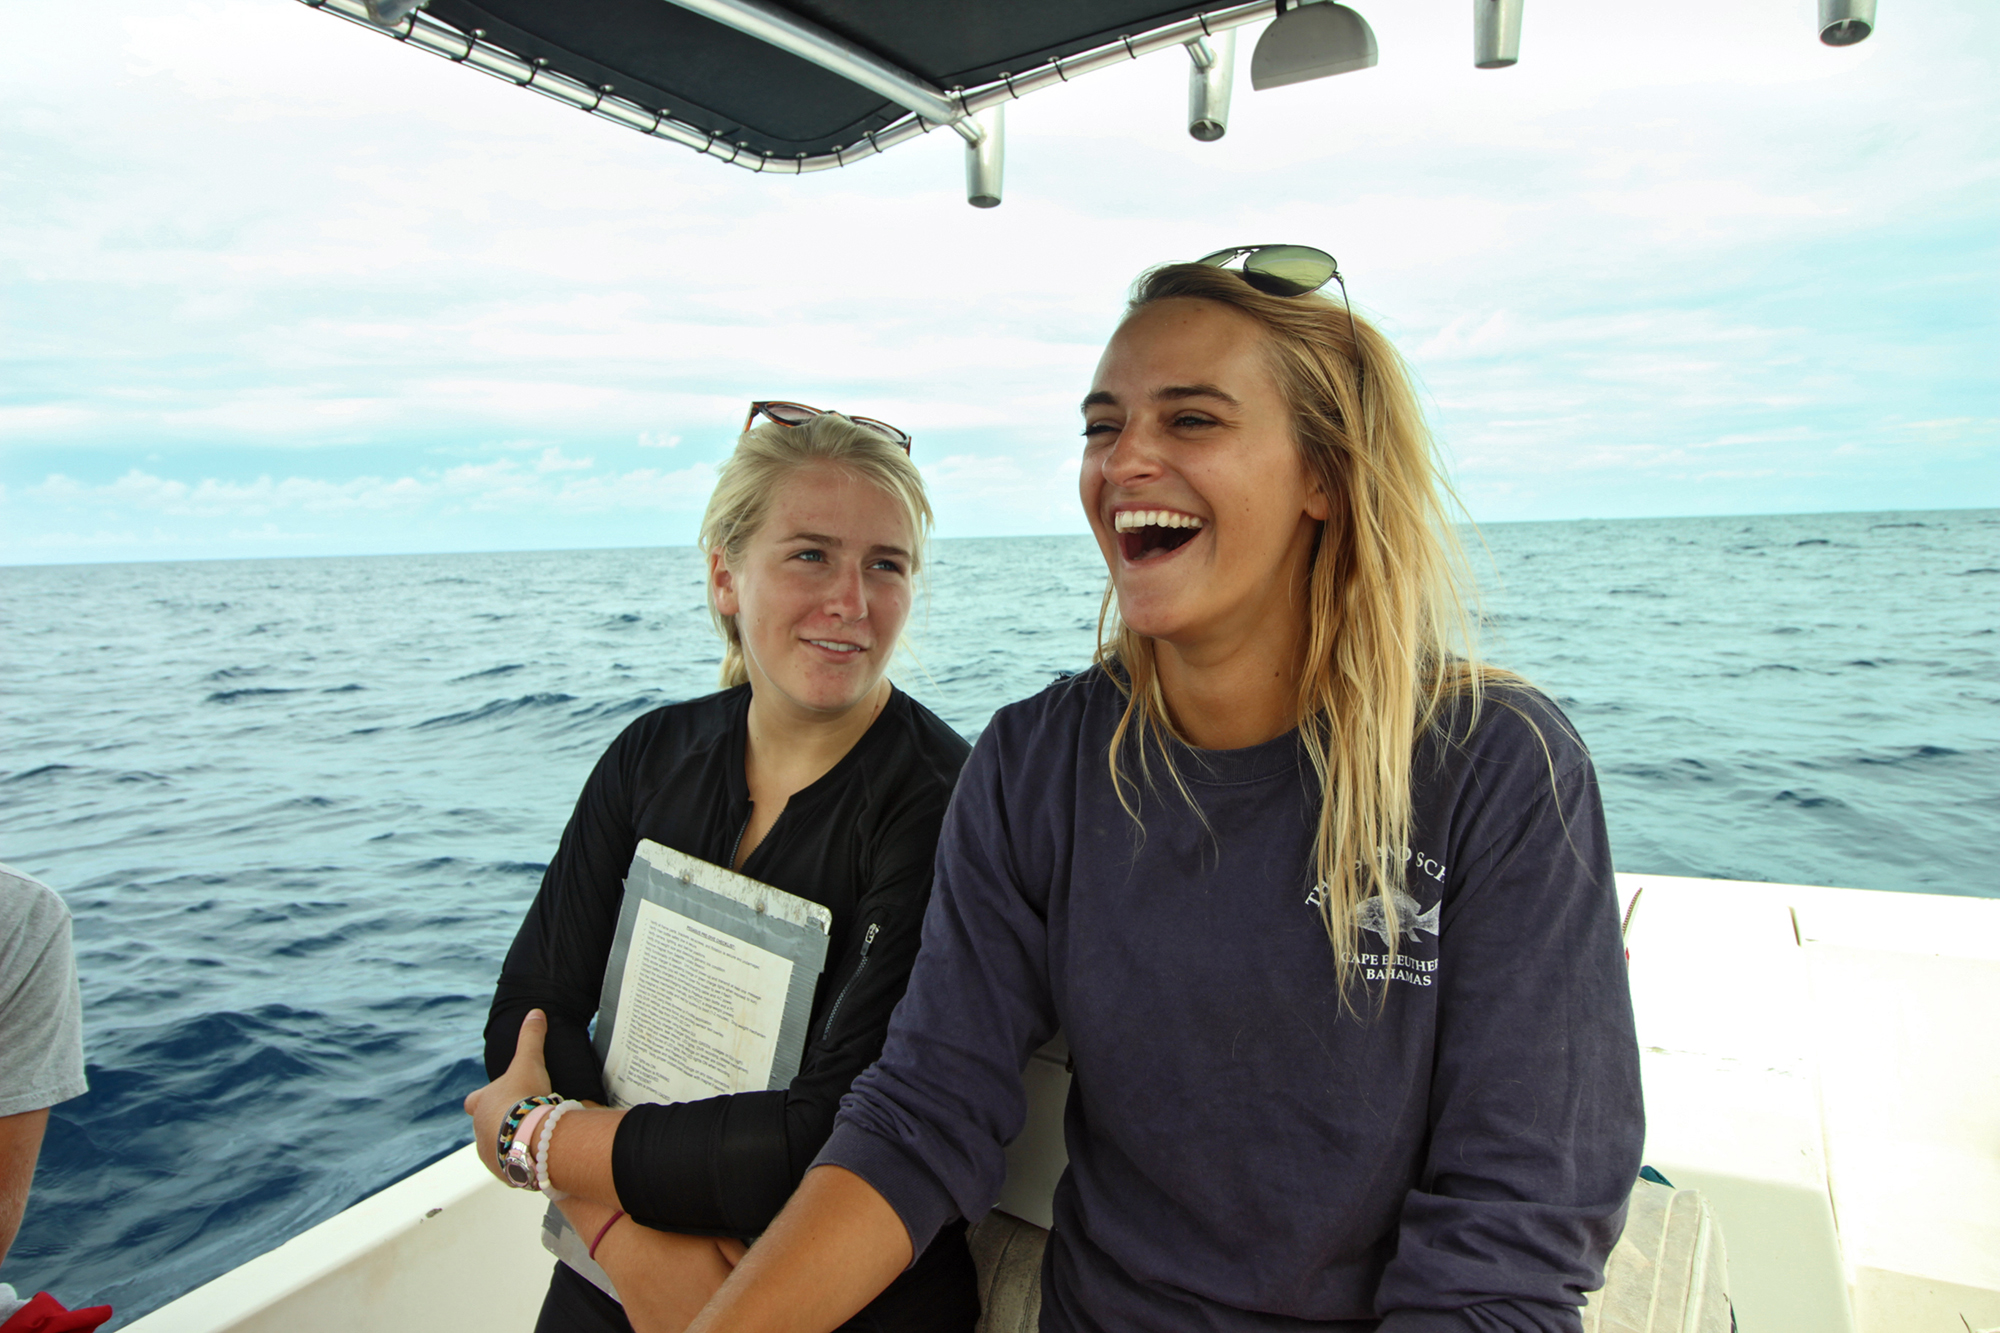 Mackey leads a deep sea trip with Island school students